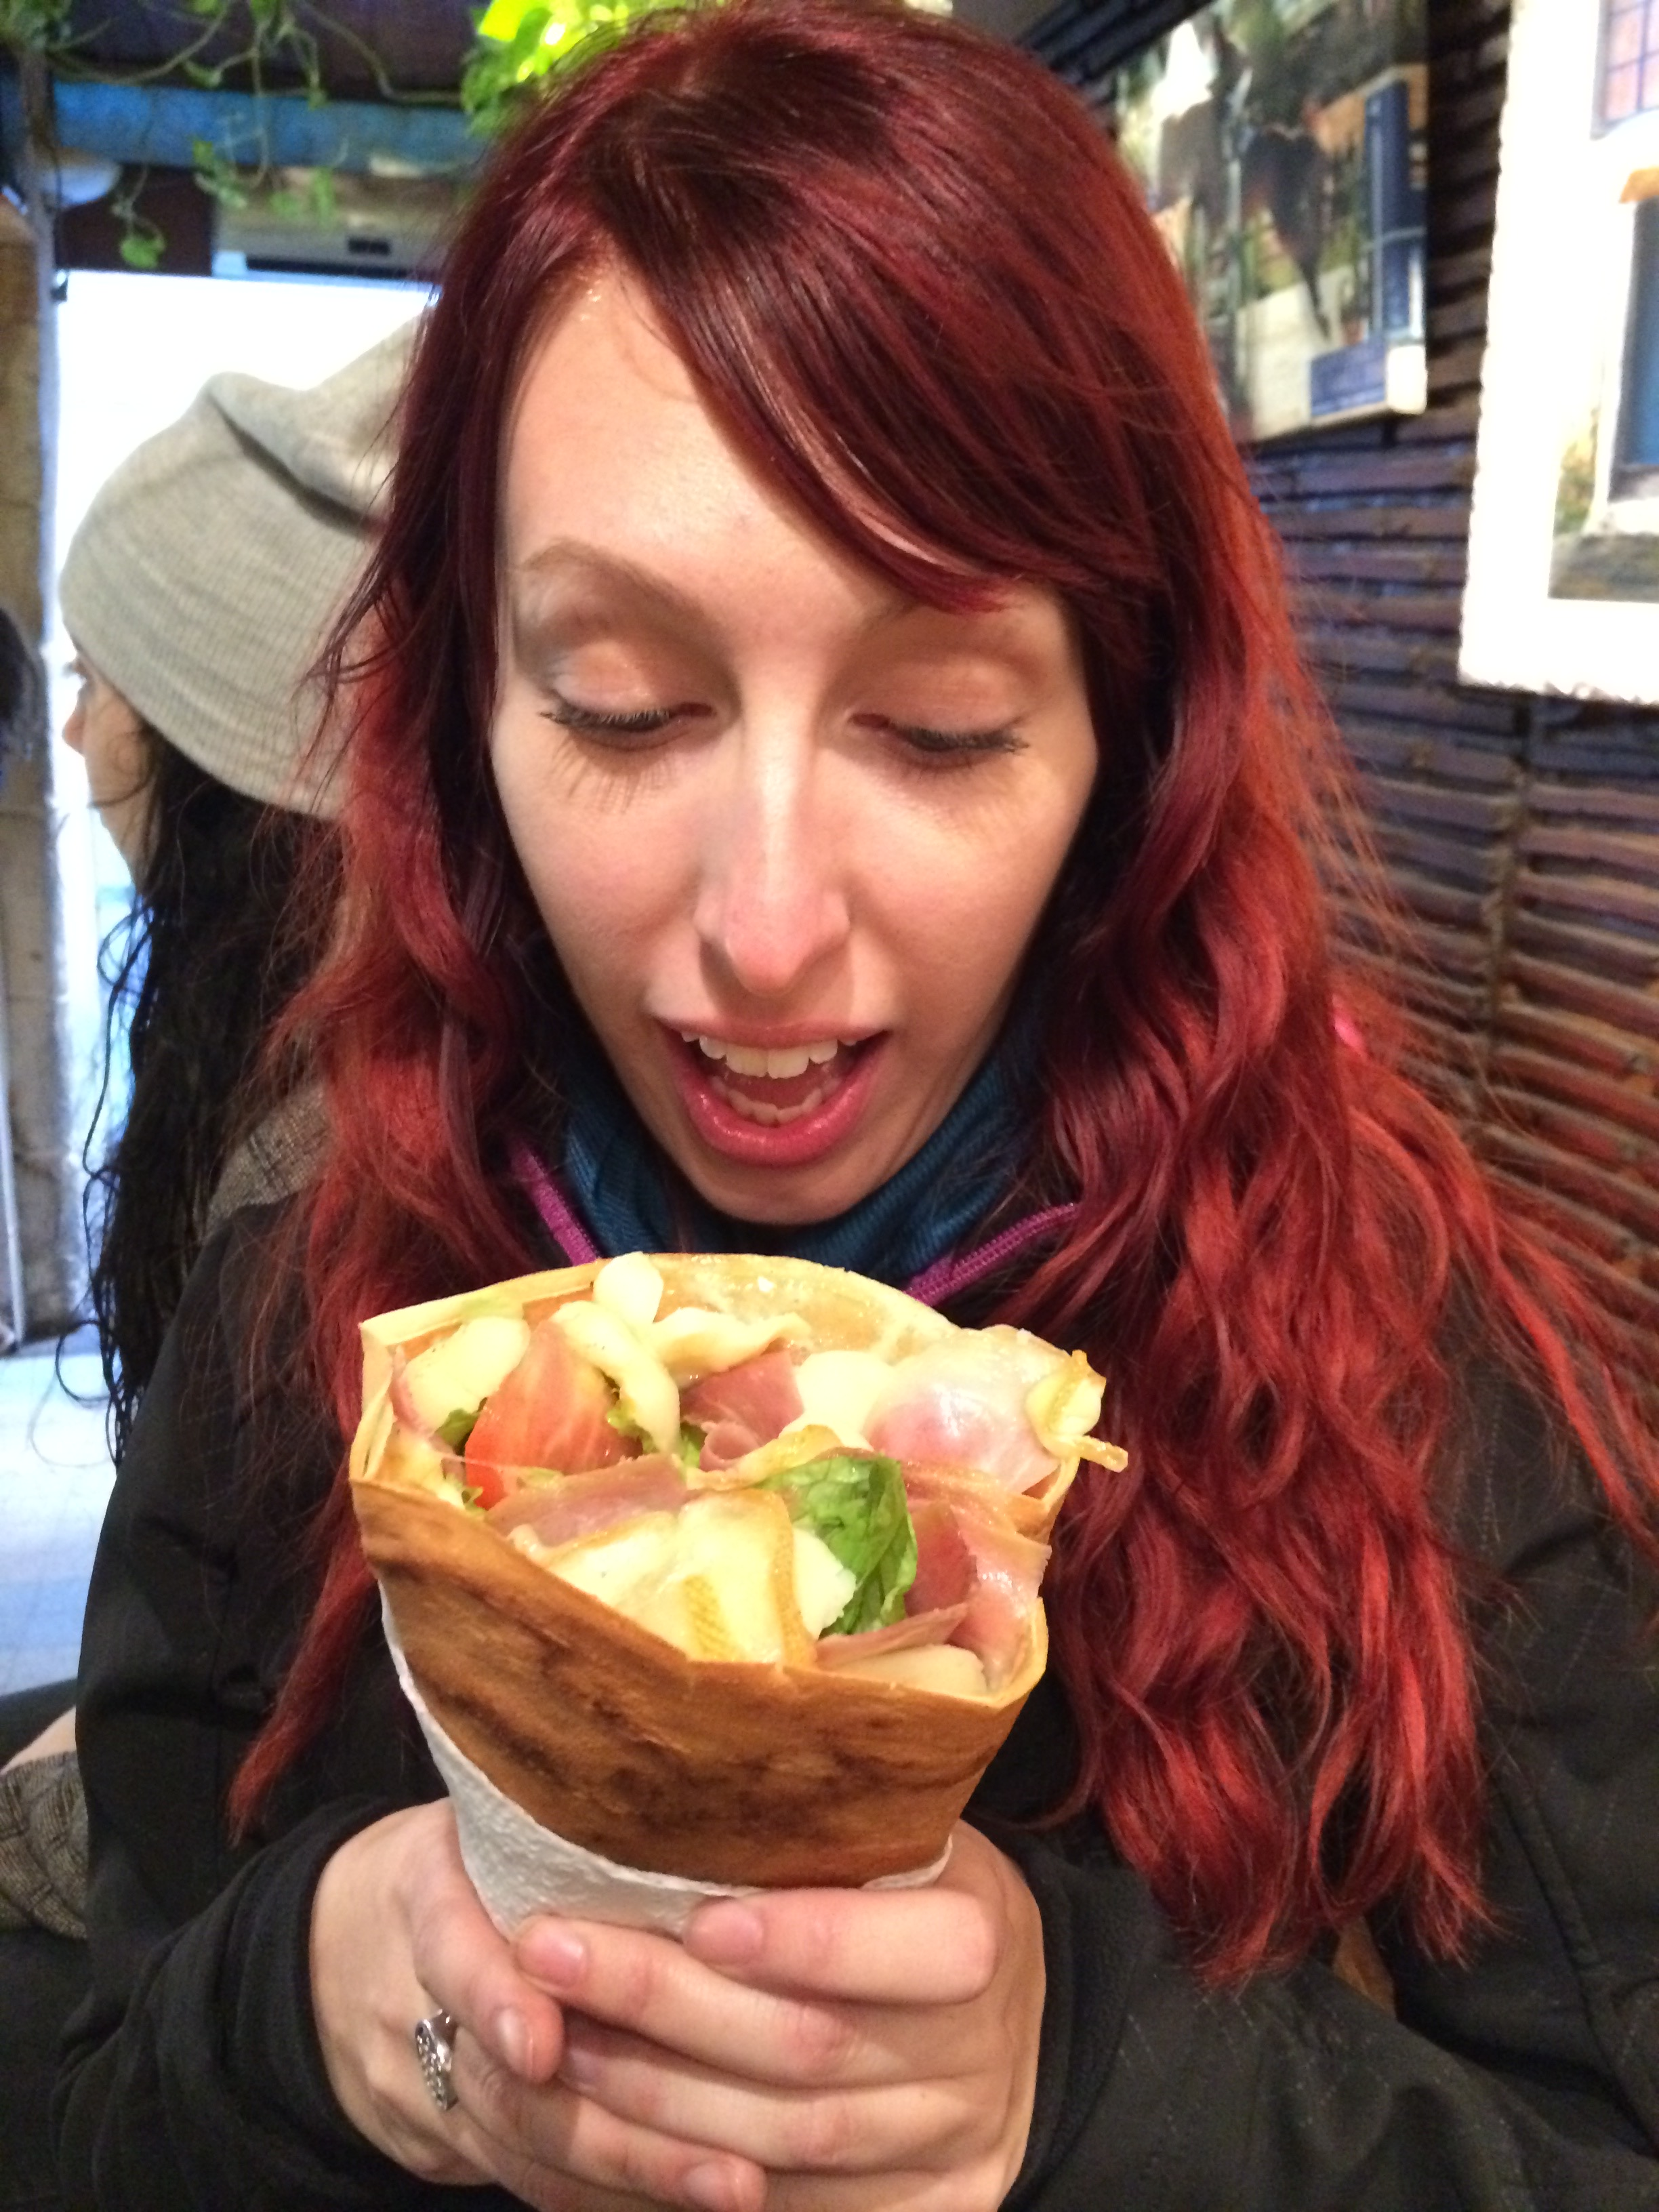 Shocked at the size & price of this amazing crêpe!